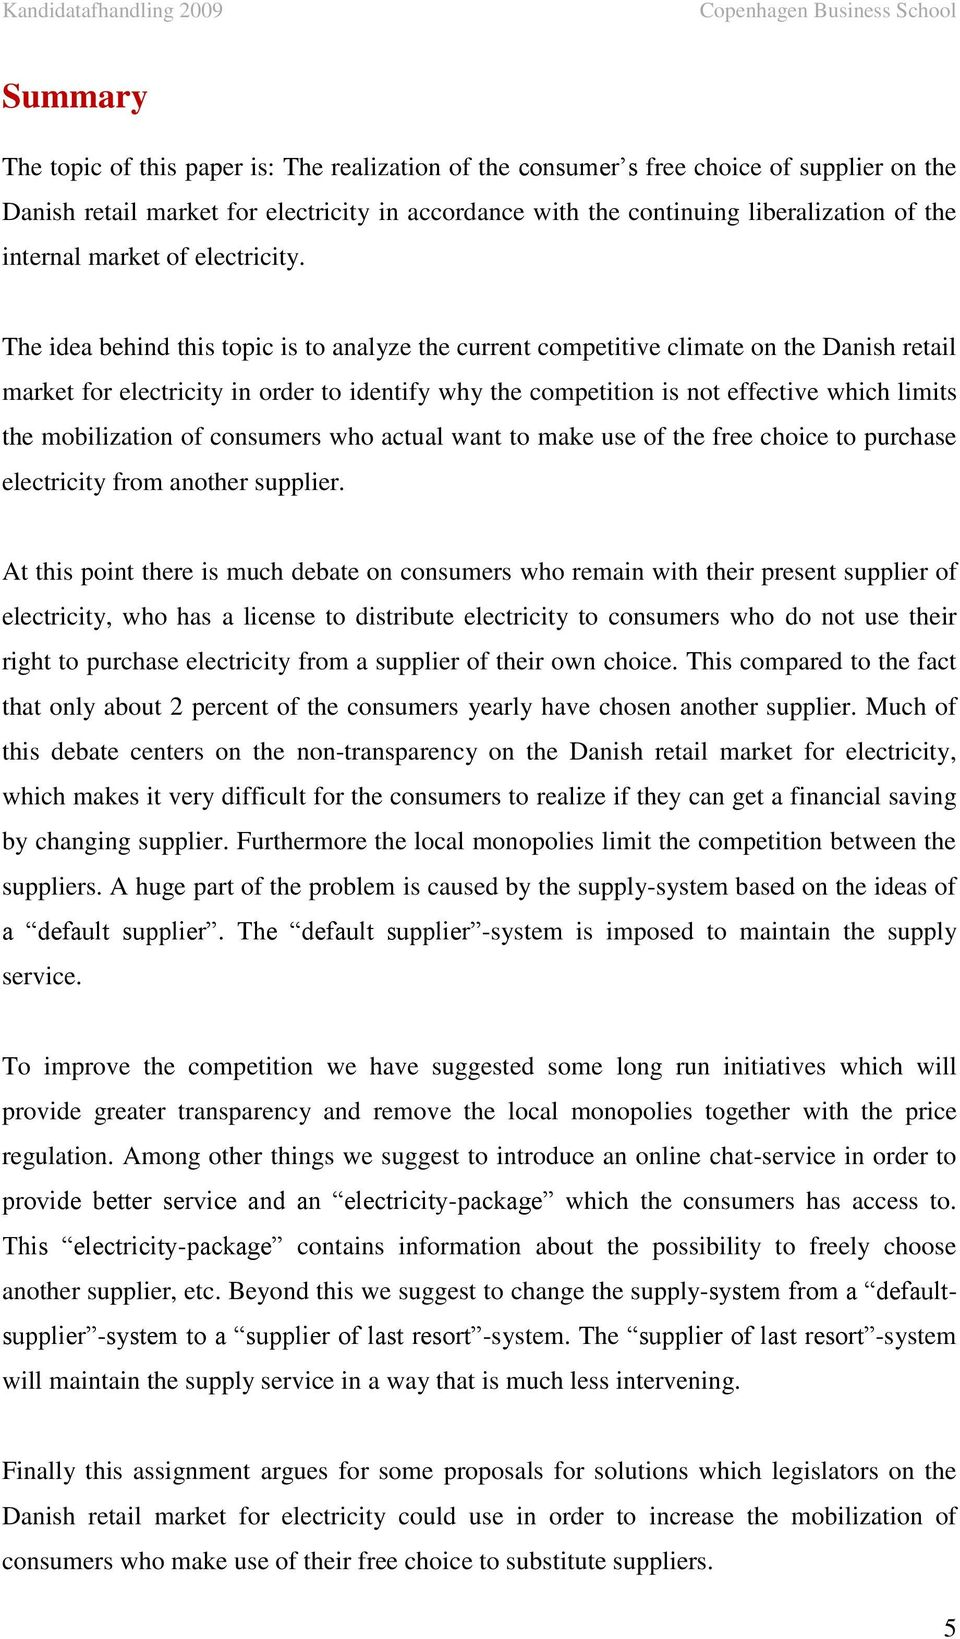 The idea behind this topic is to analyze the current competitive climate on the Danish retail market for electricity in order to identify why the competition is not effective which limits the